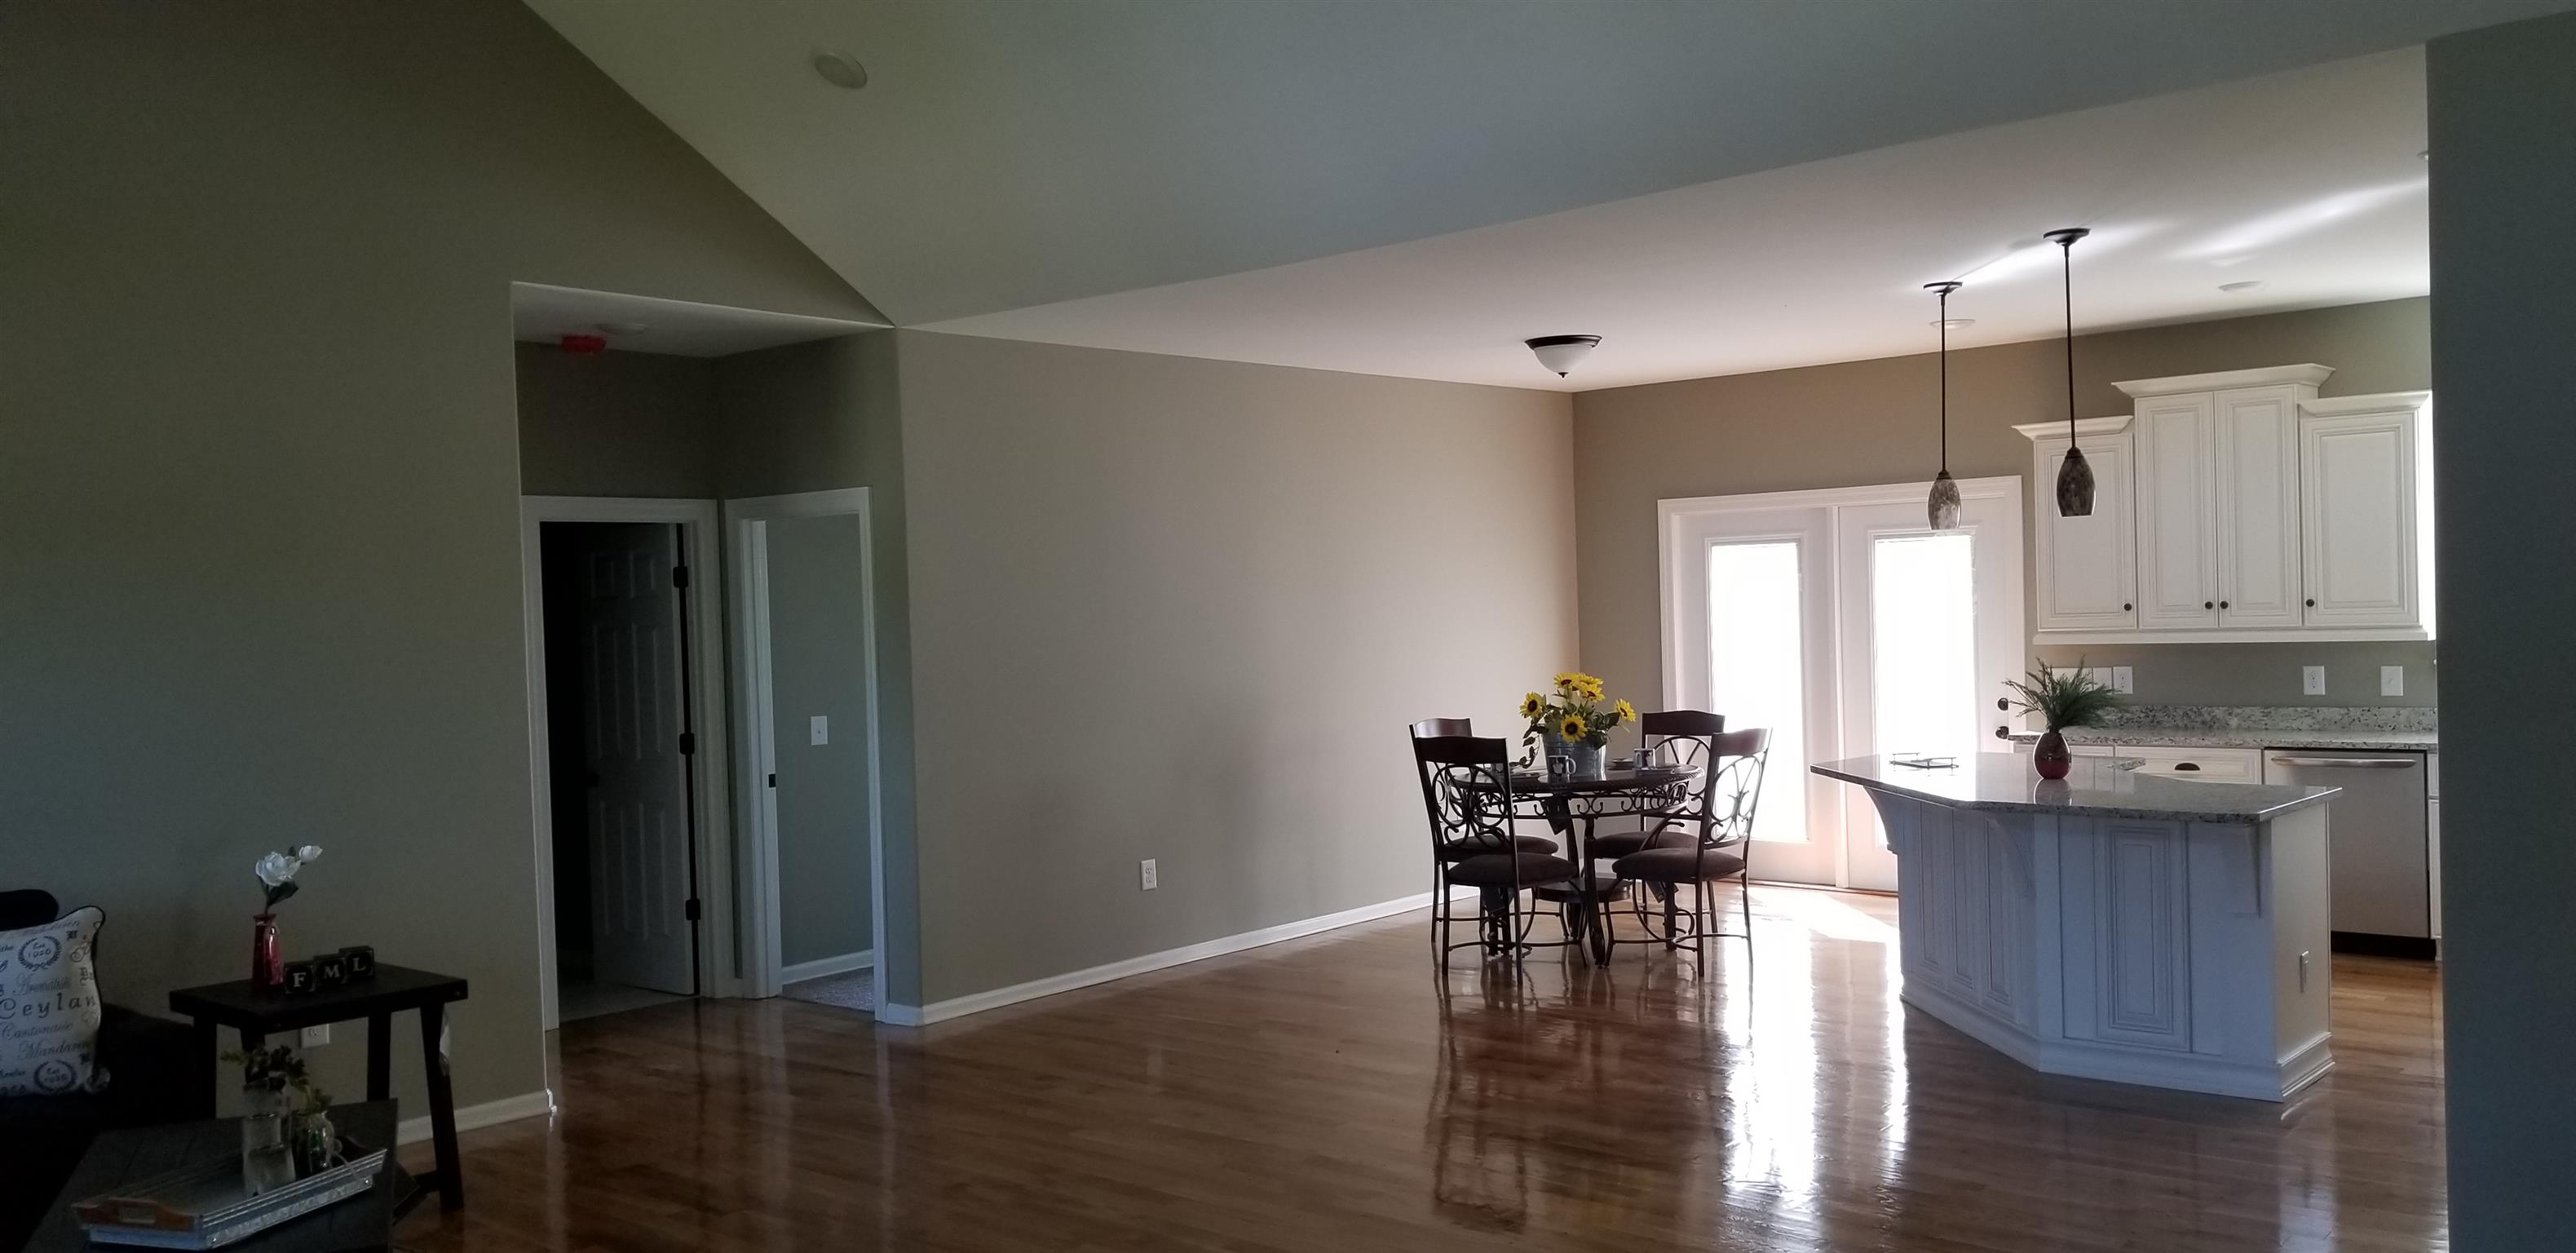 67 Lakeview Dr - photo 13